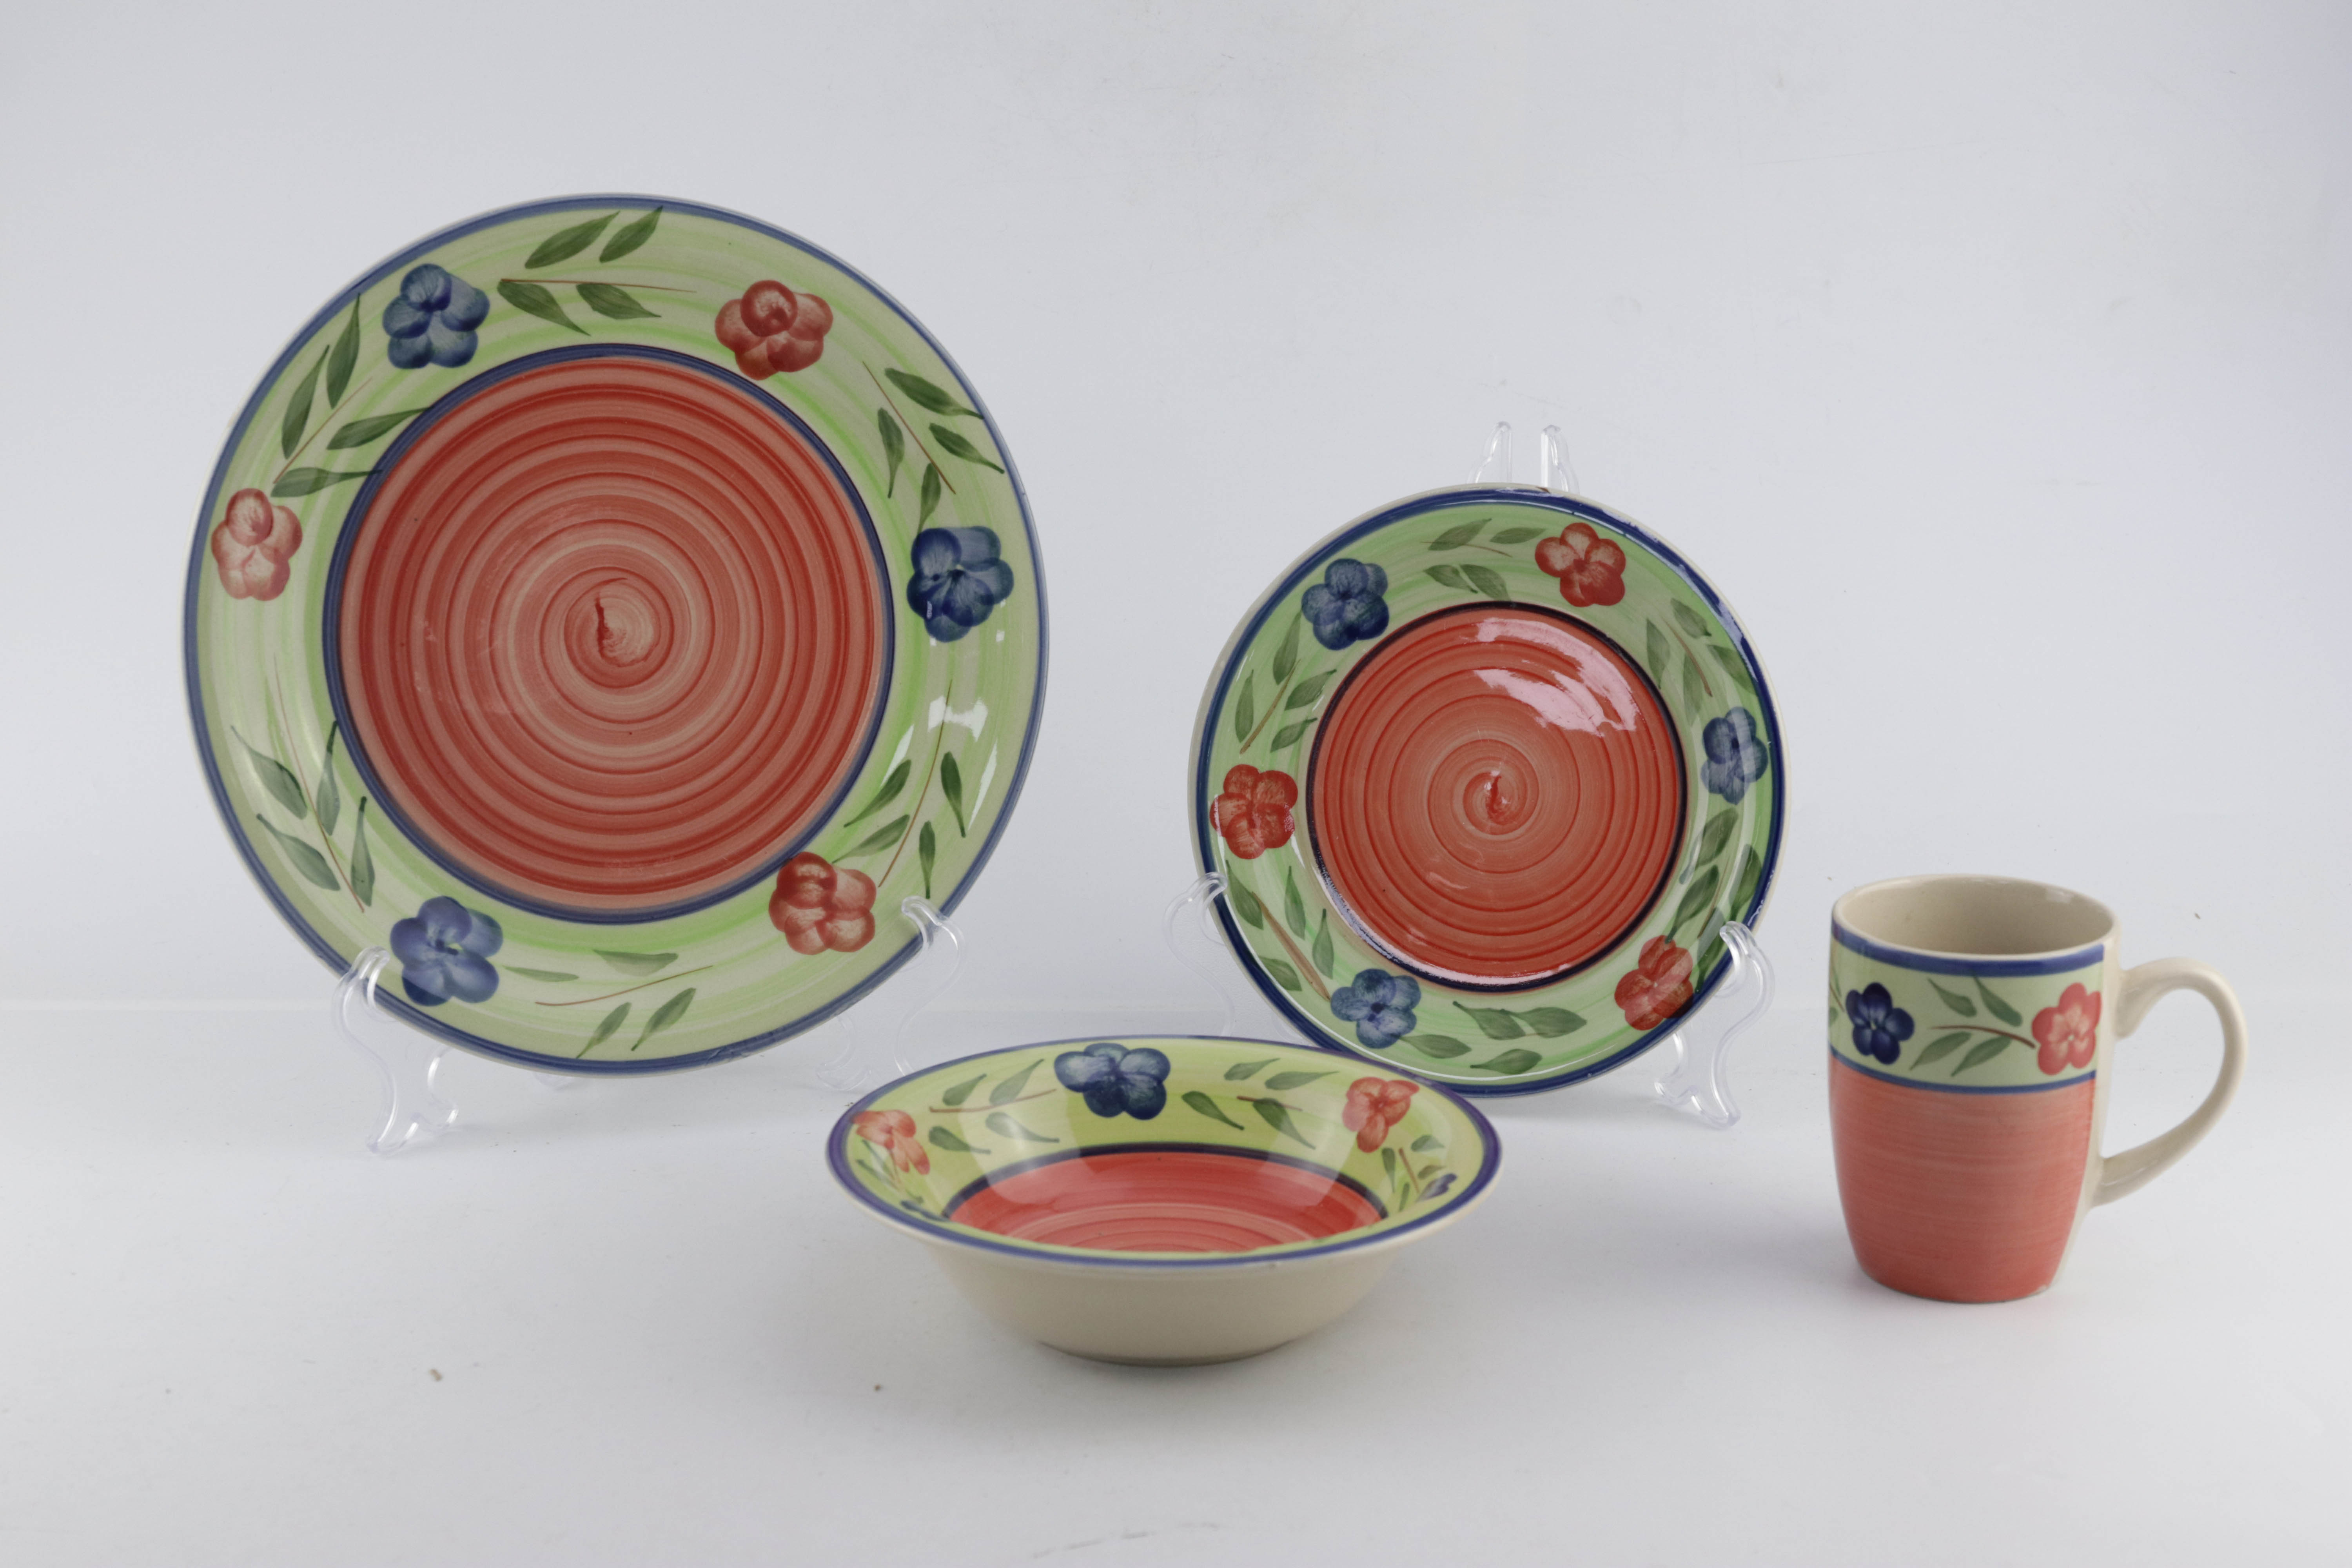 16pc & 24pc hand-painted ceramic dinner set for family use 13